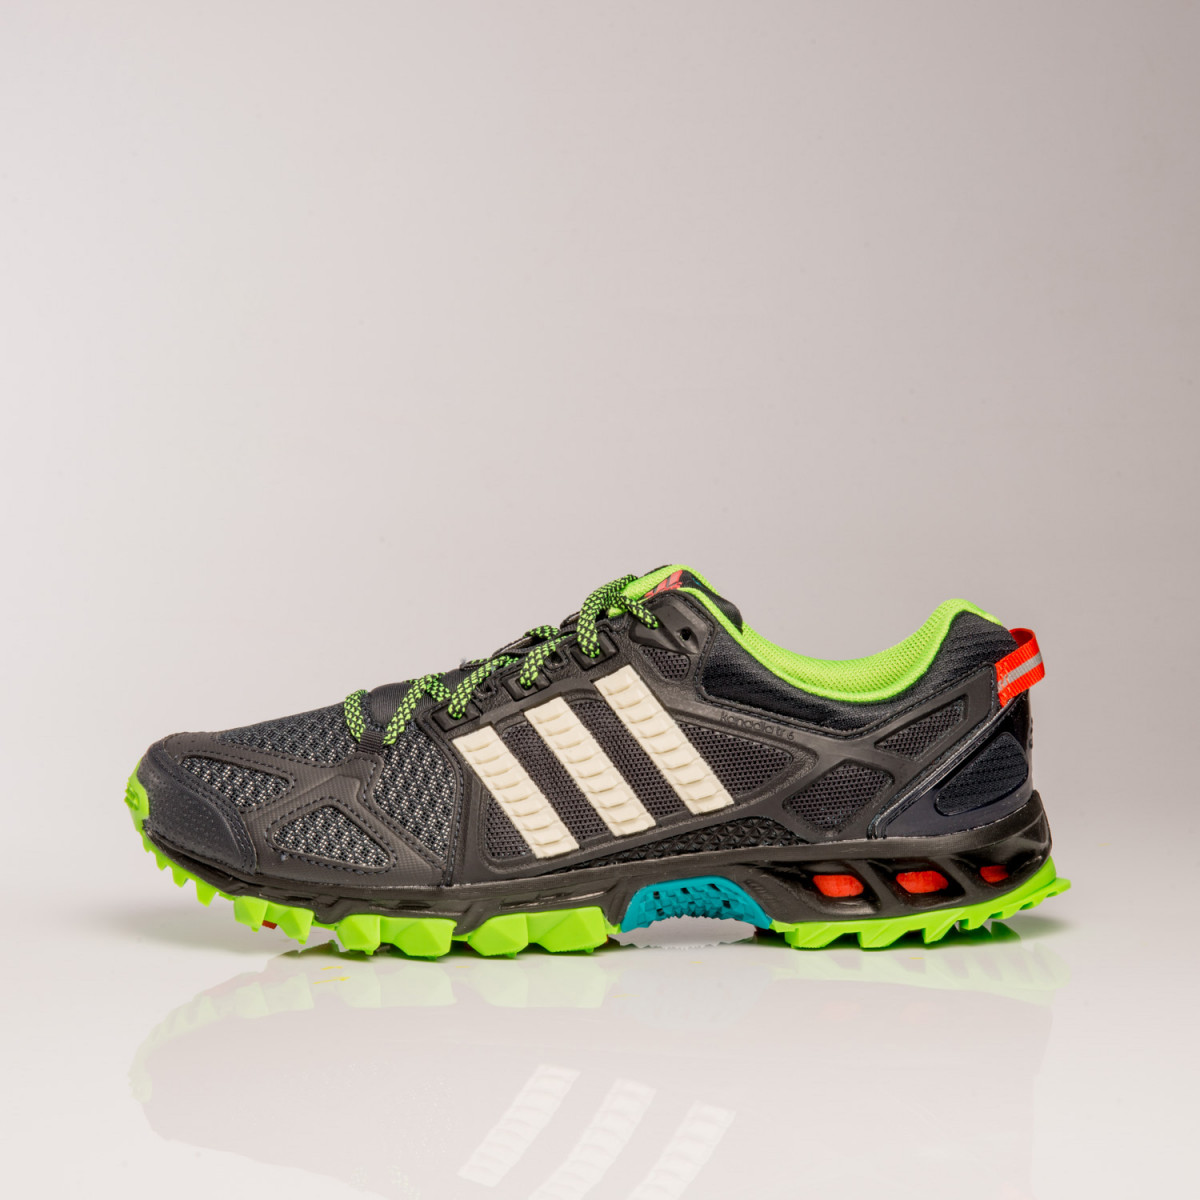 ZAPATILLAS ADIDAS KANADIA TR 6 M